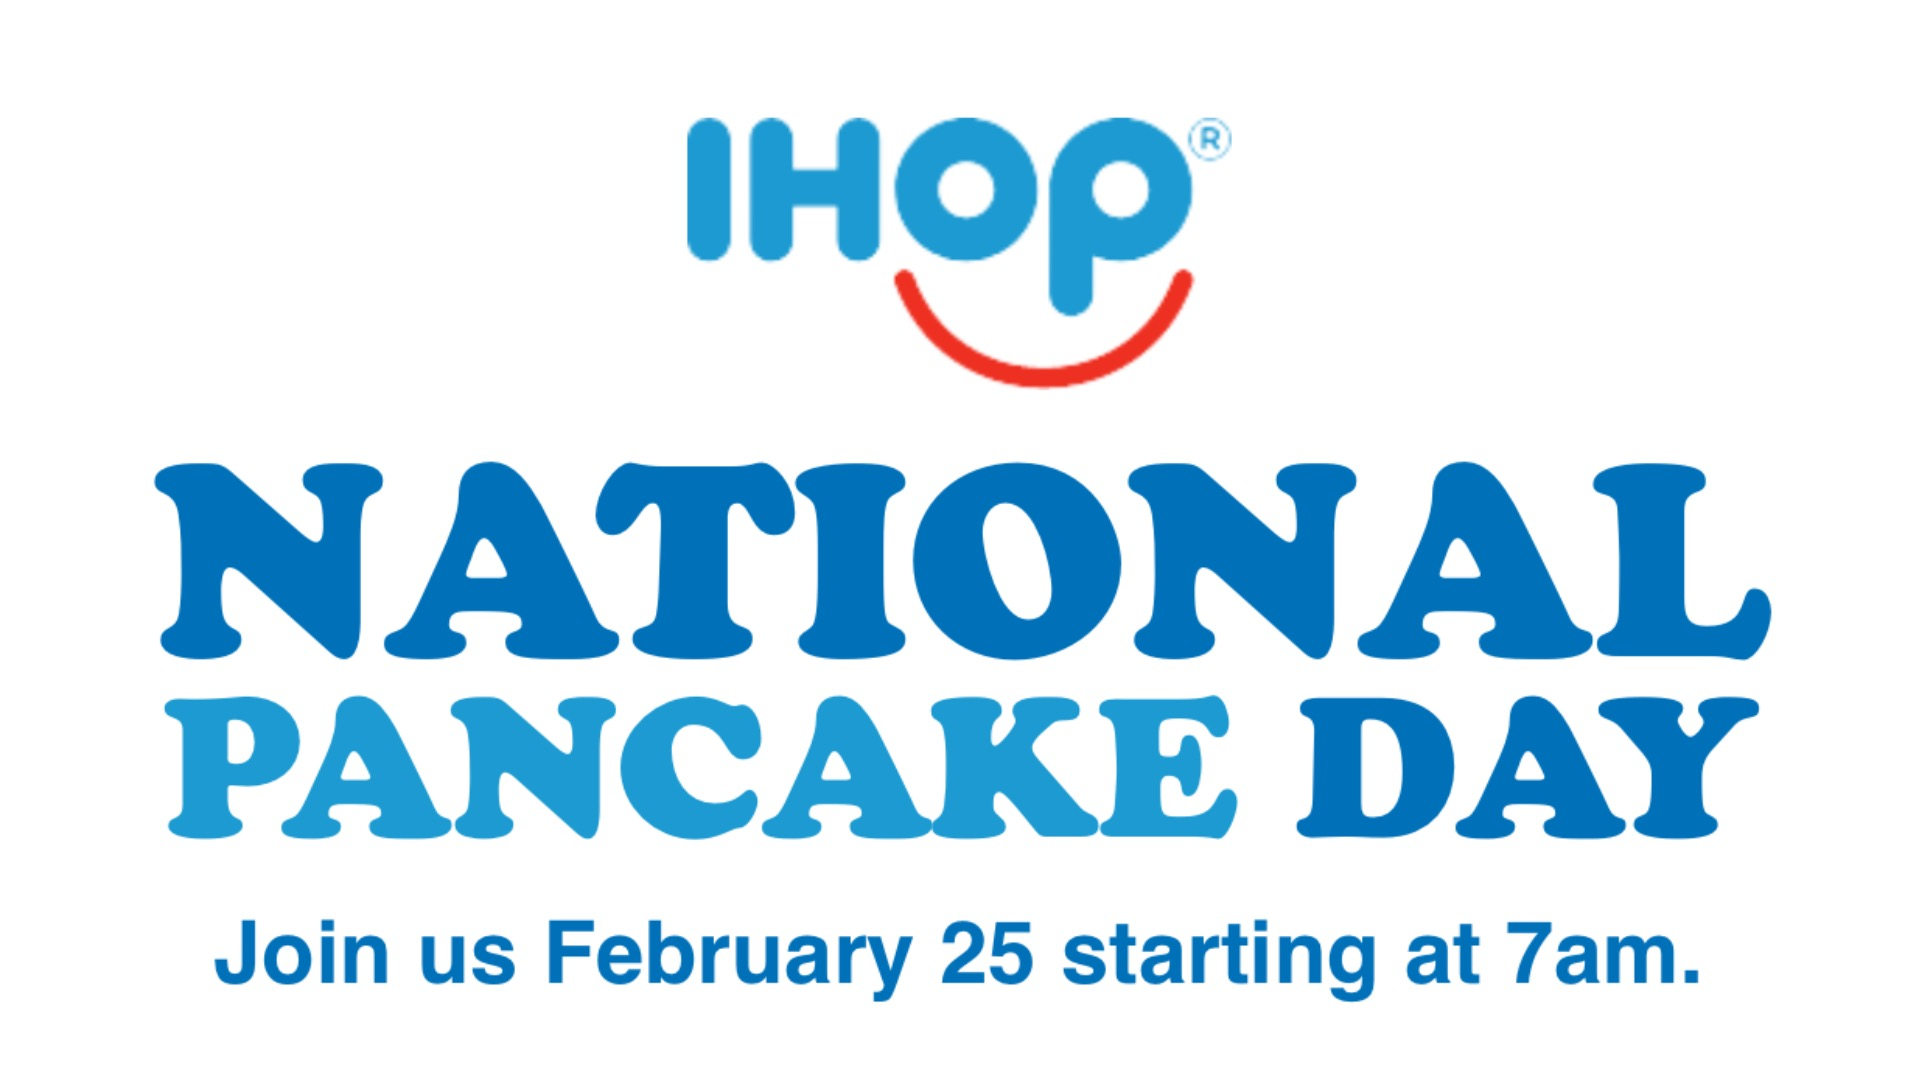 Happy Pancake Day Free Pancakes For Everyone On Tuesday February 25